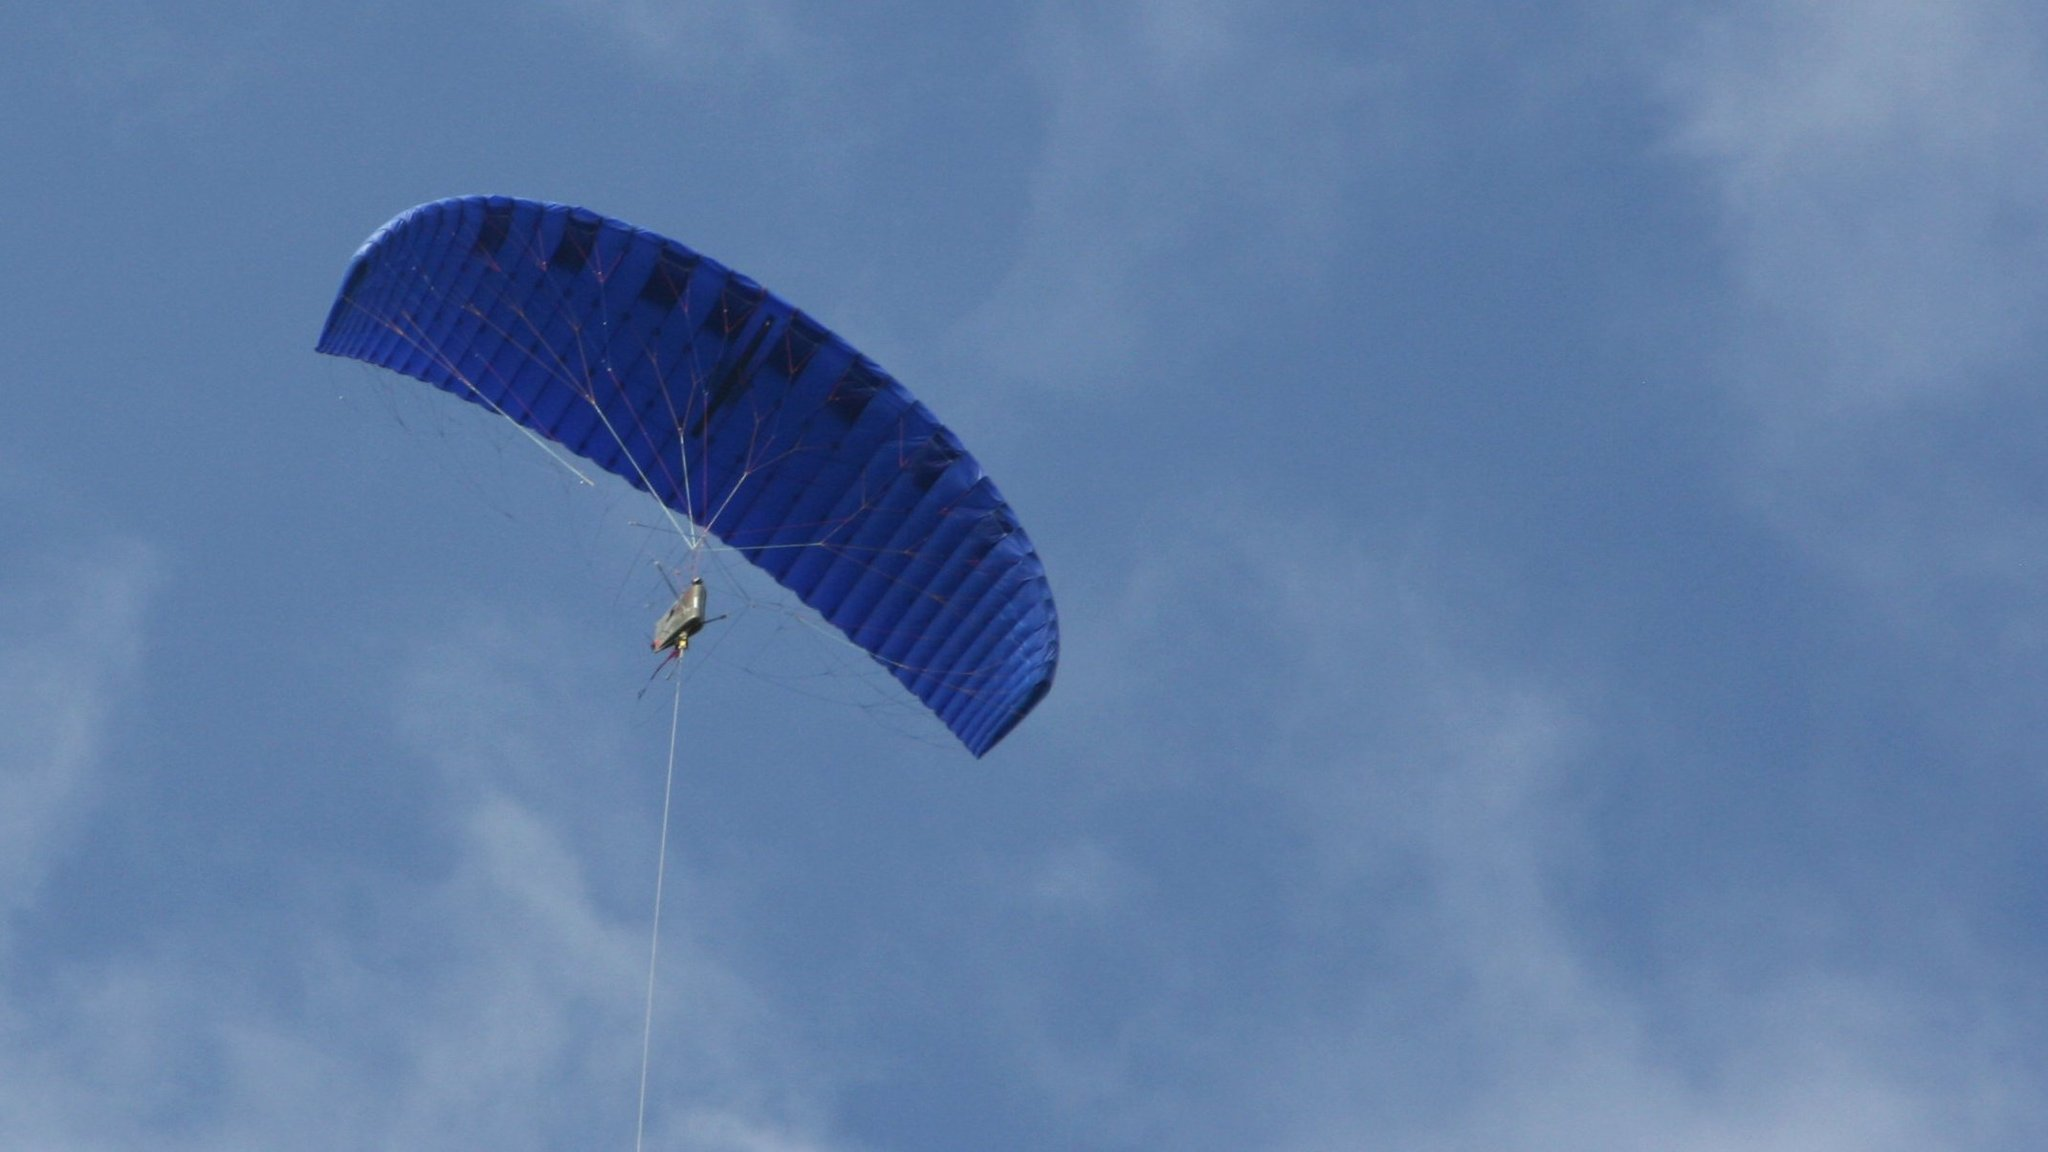 royal dutch shell invests in green power kite